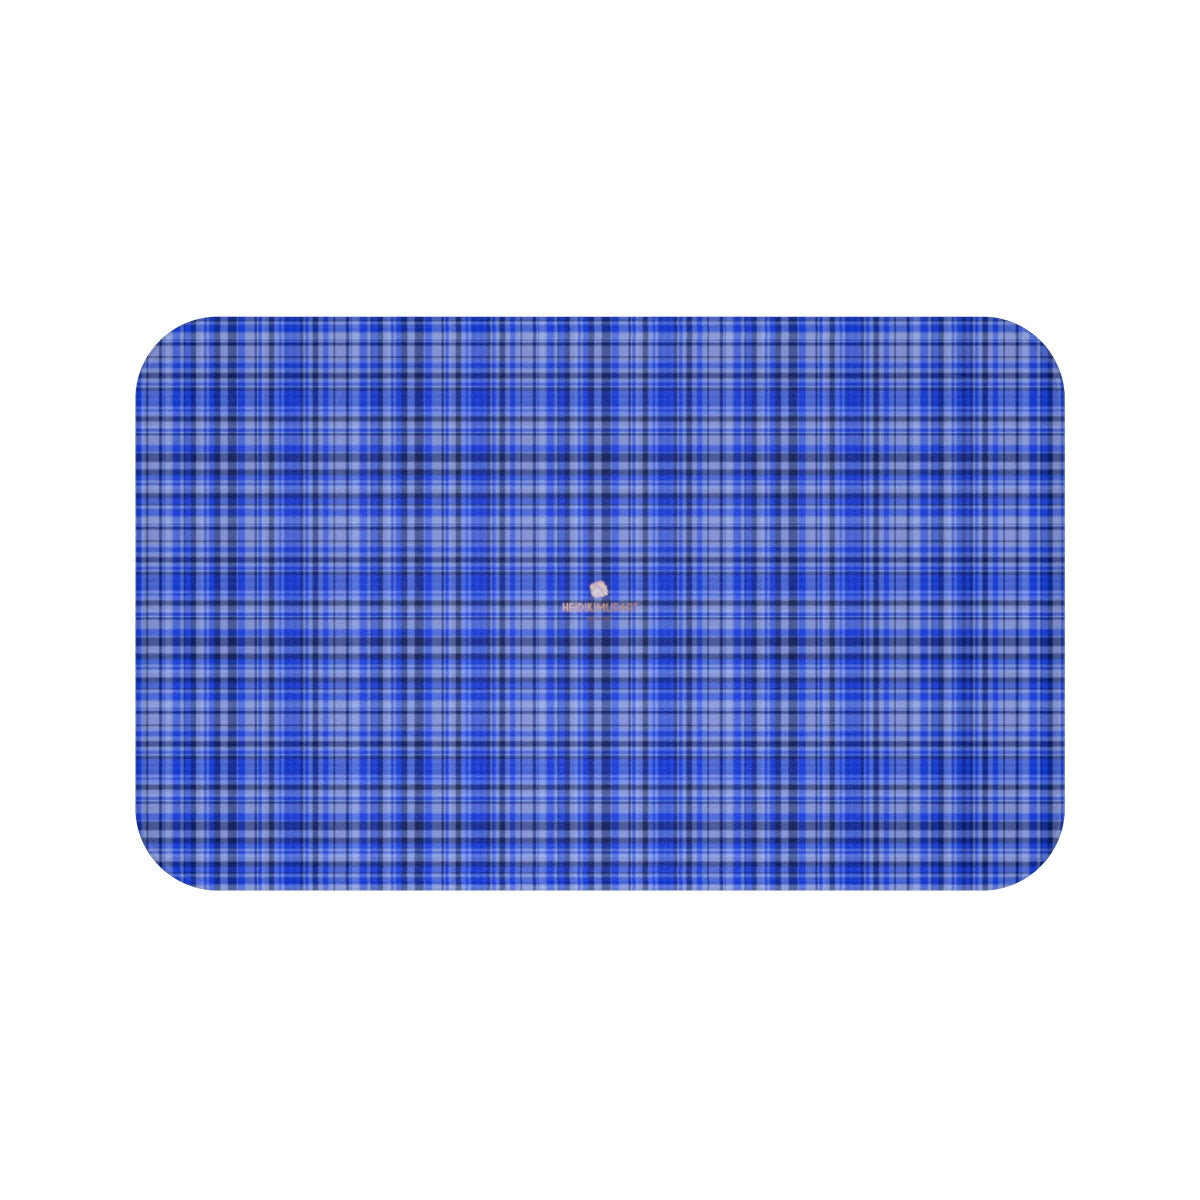 Blue Tartan Plaid Print Designer Bathroom Anti-Slip Microfiber Bath Mat-Printed in USA-Bath Mat-Large 34x21-Heidi Kimura Art LLC